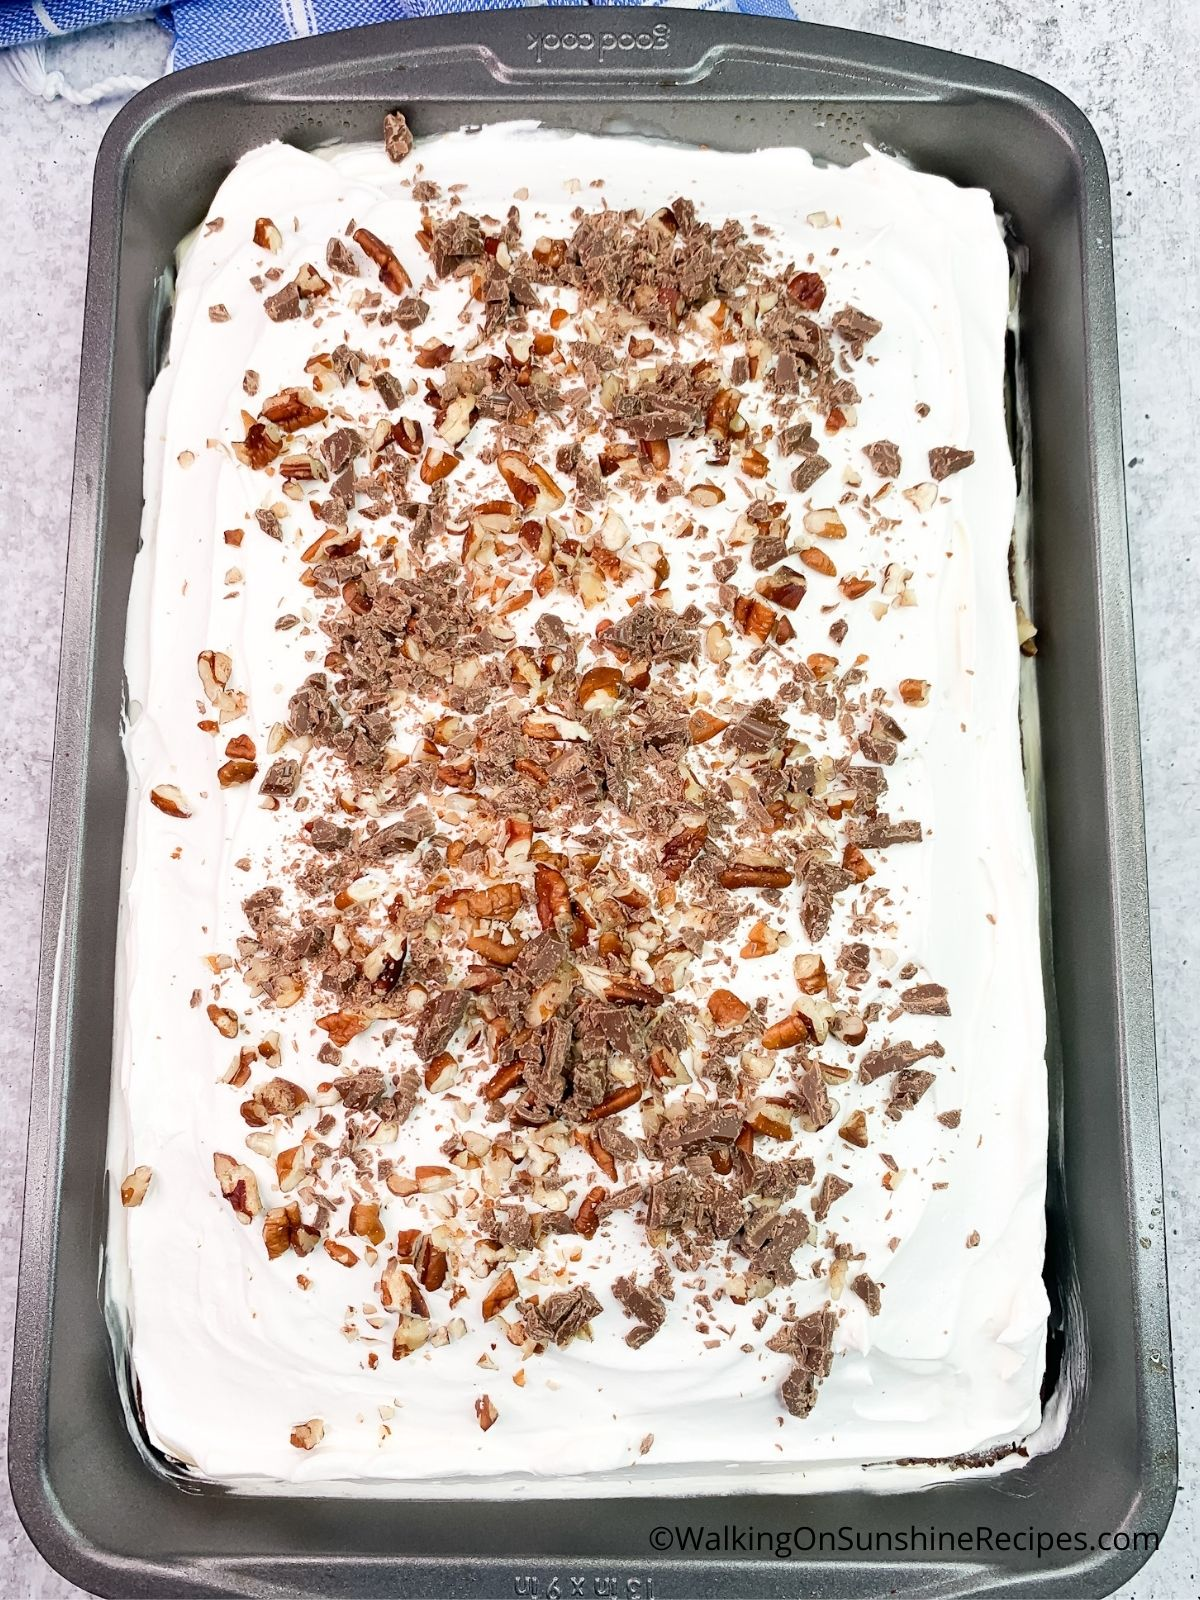 Chocolate cake with whipped topping, chocolate chips and chopped pecans.